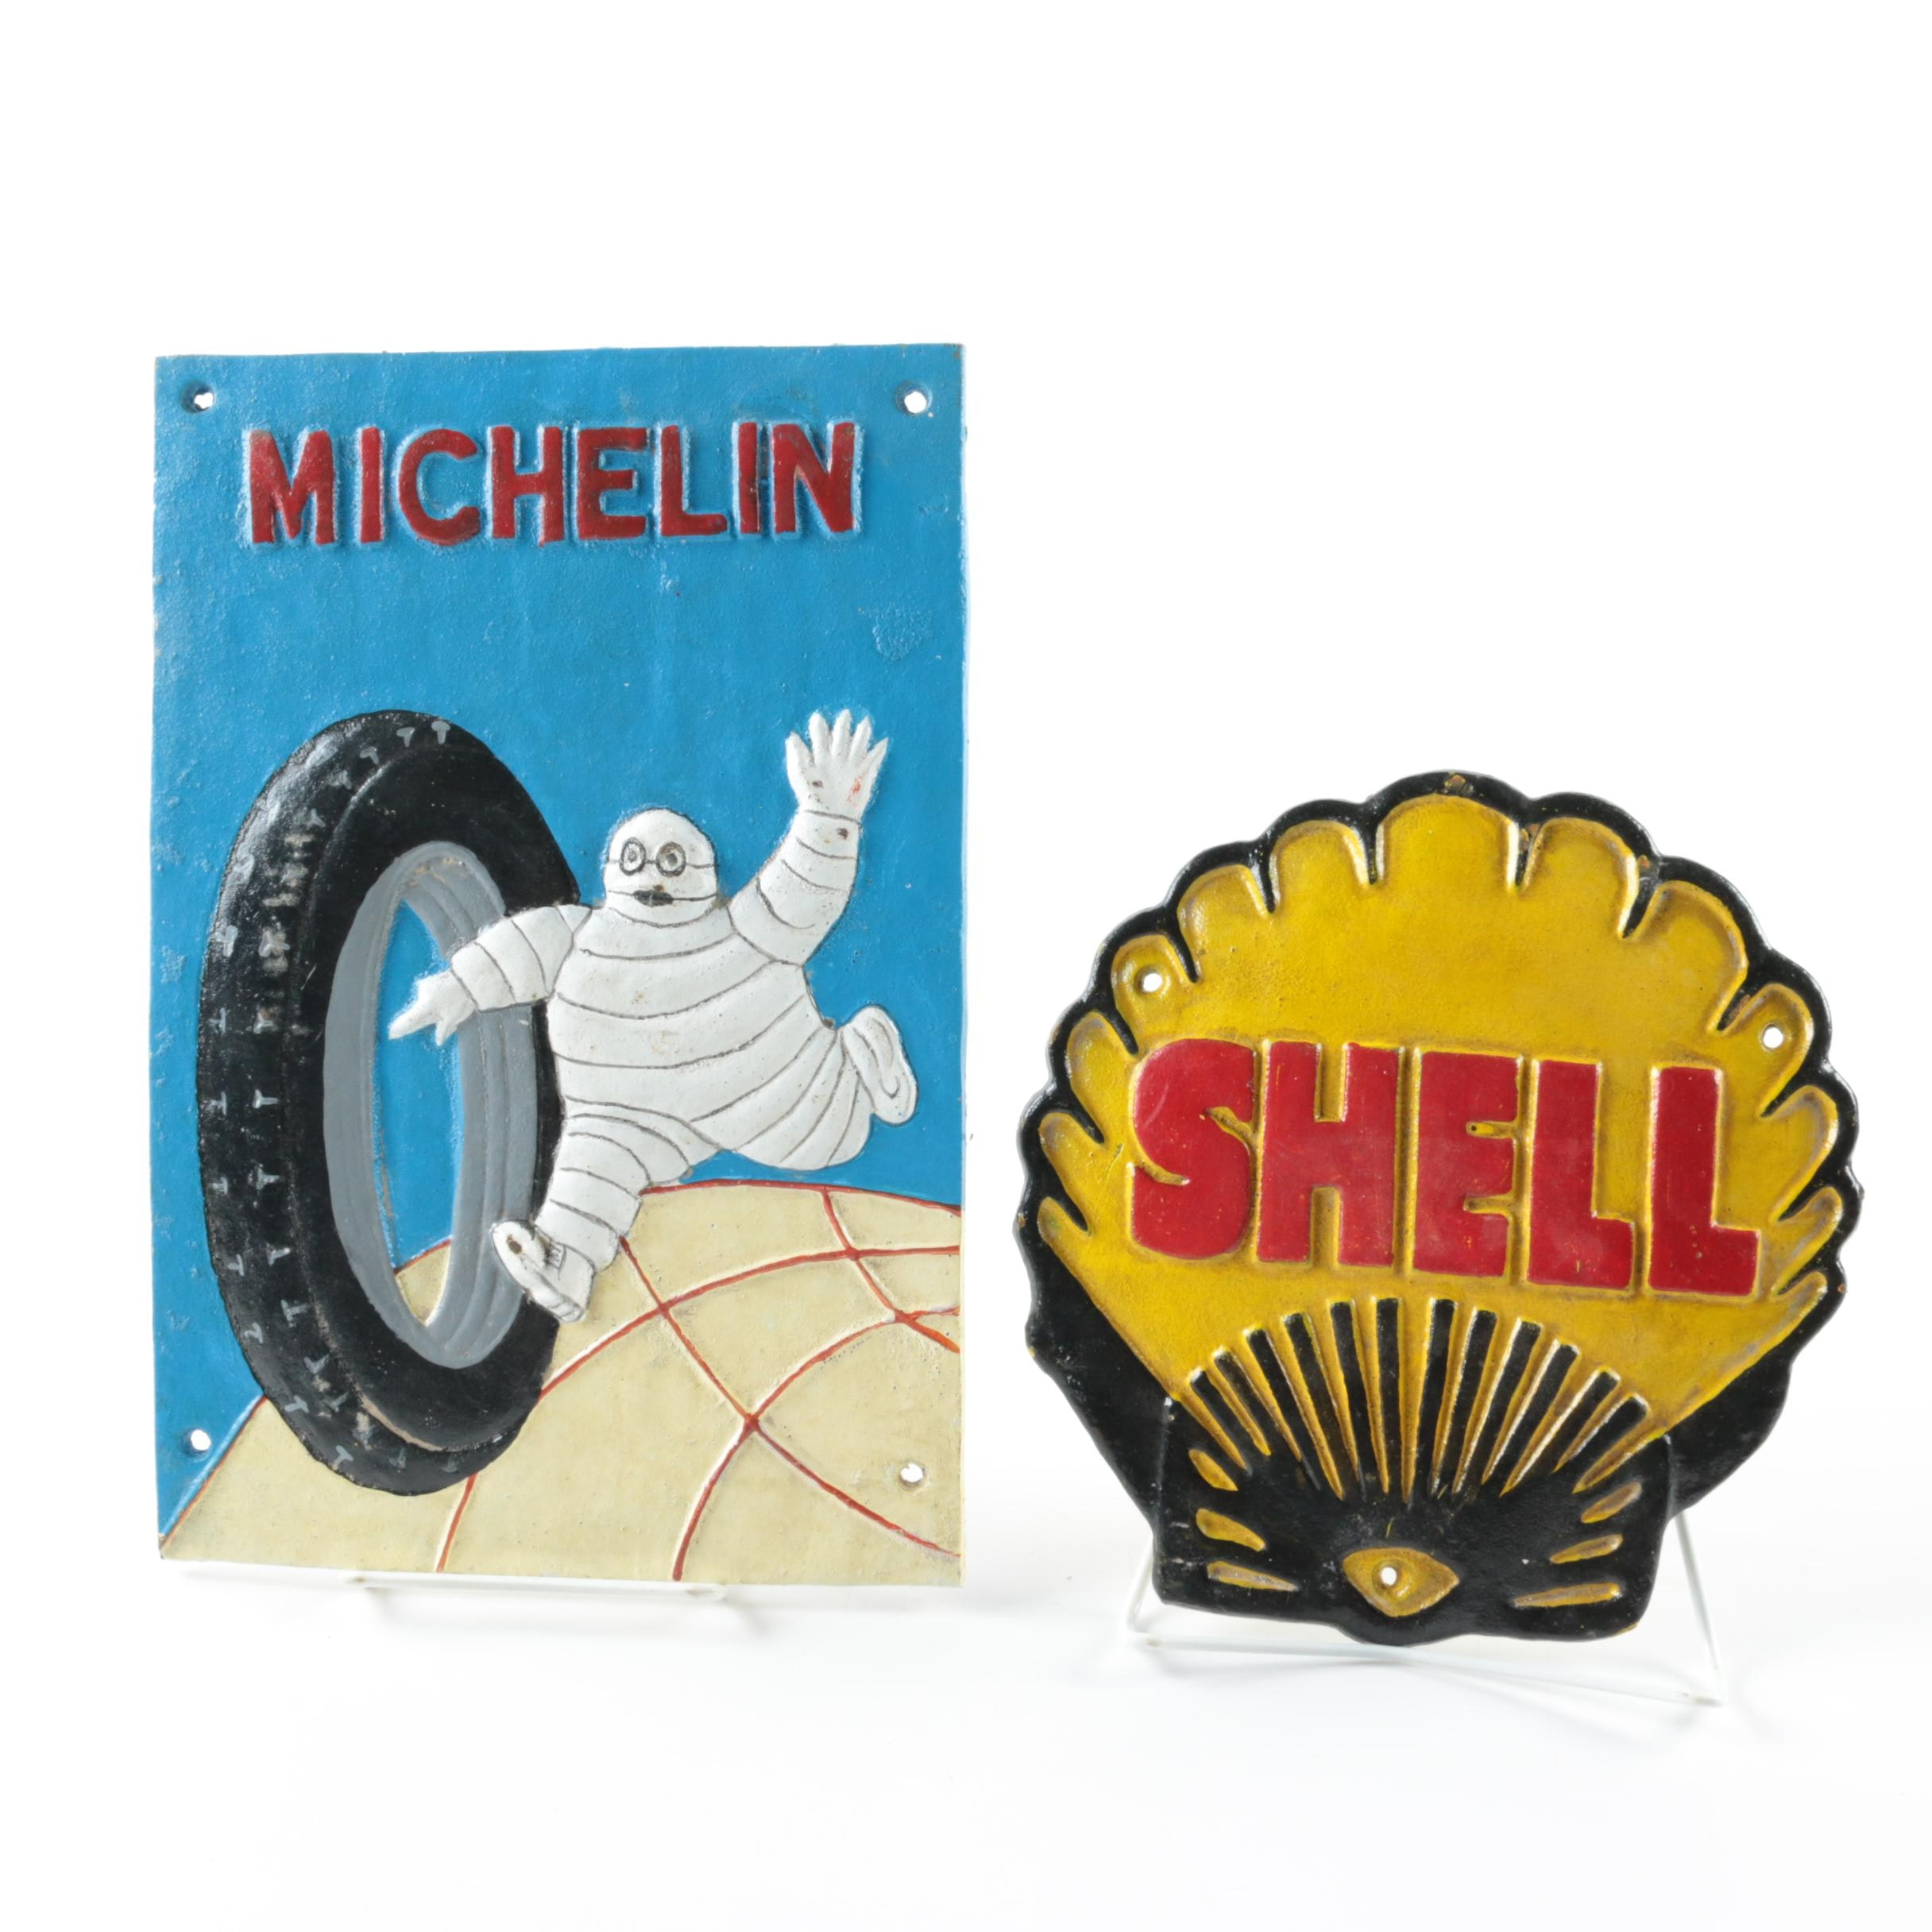 Iron Advertising Signs for Michelin and Shell